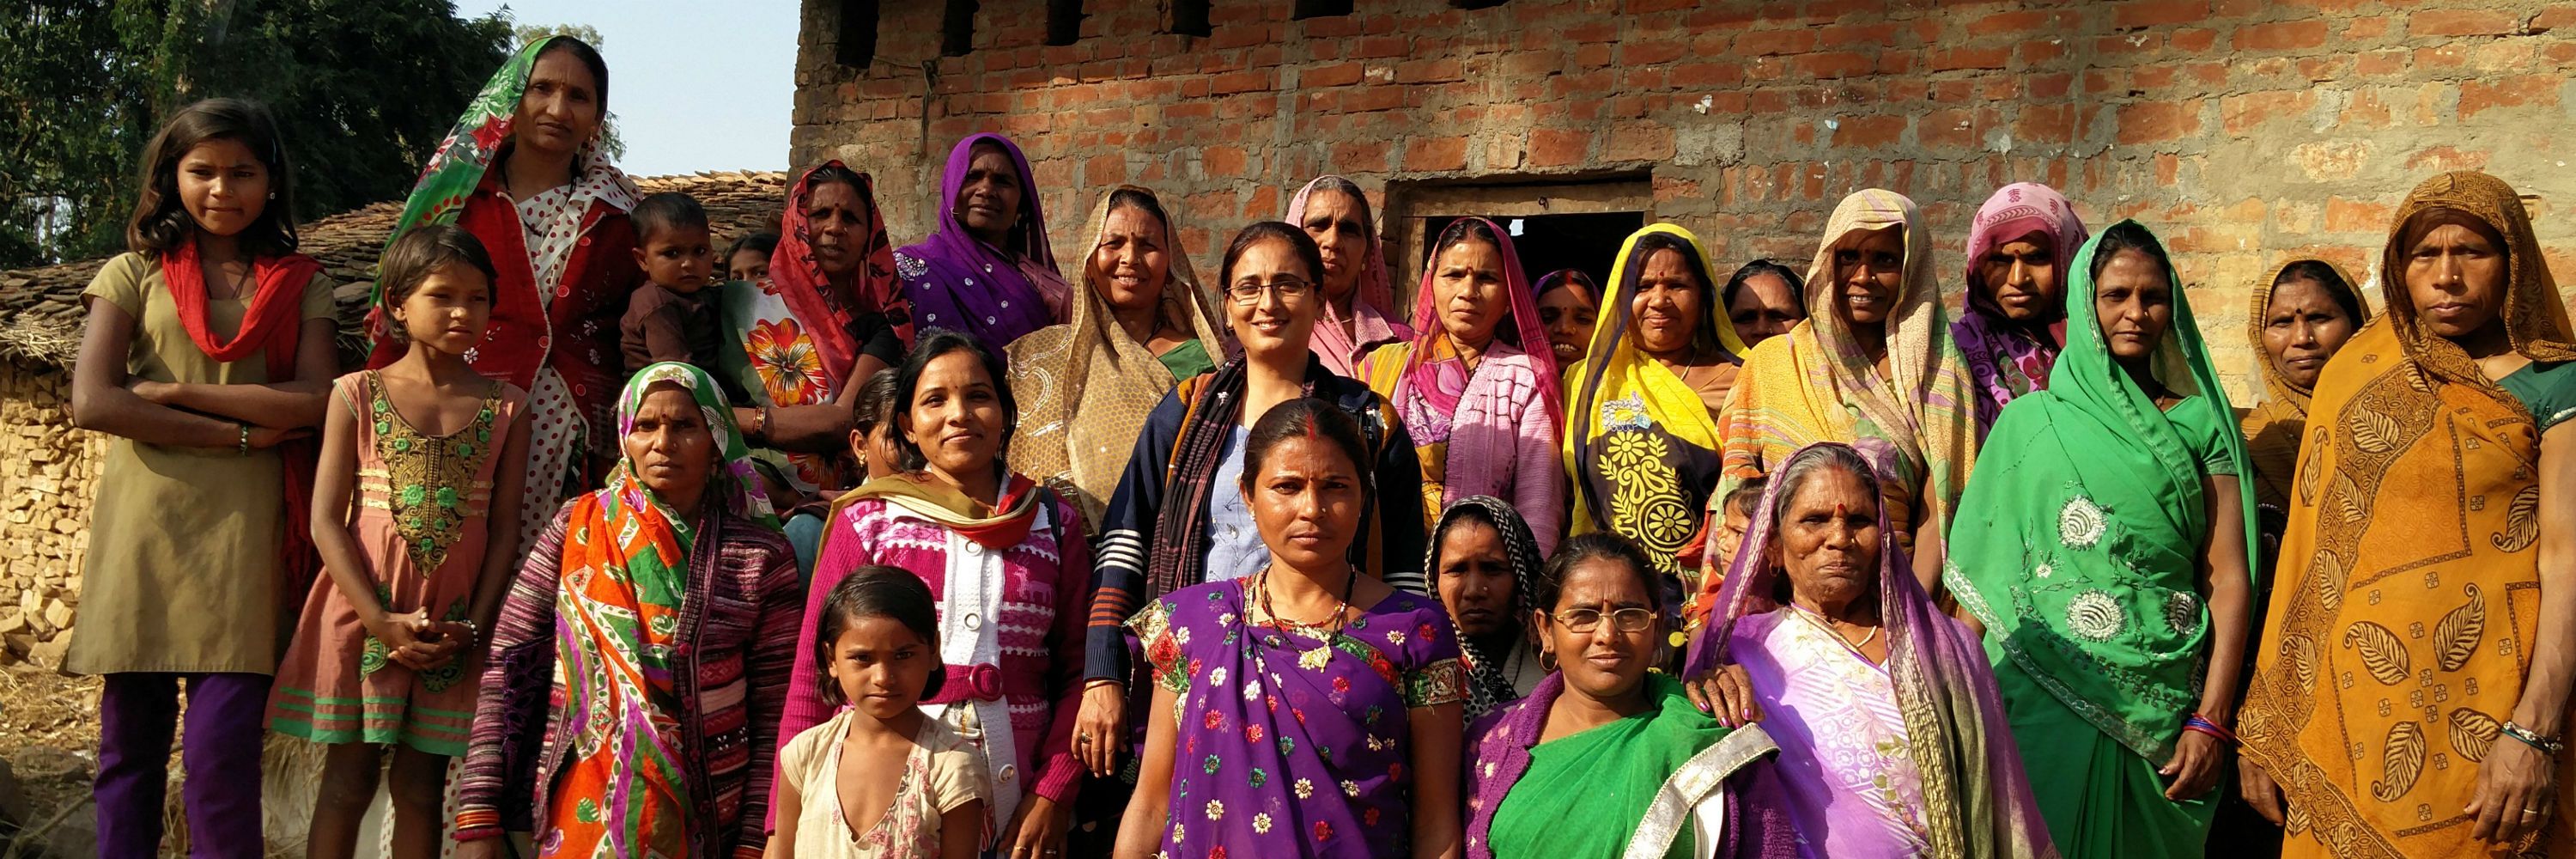 Members of the Dalit Mahila Samiti. Credit: Neha Dixit